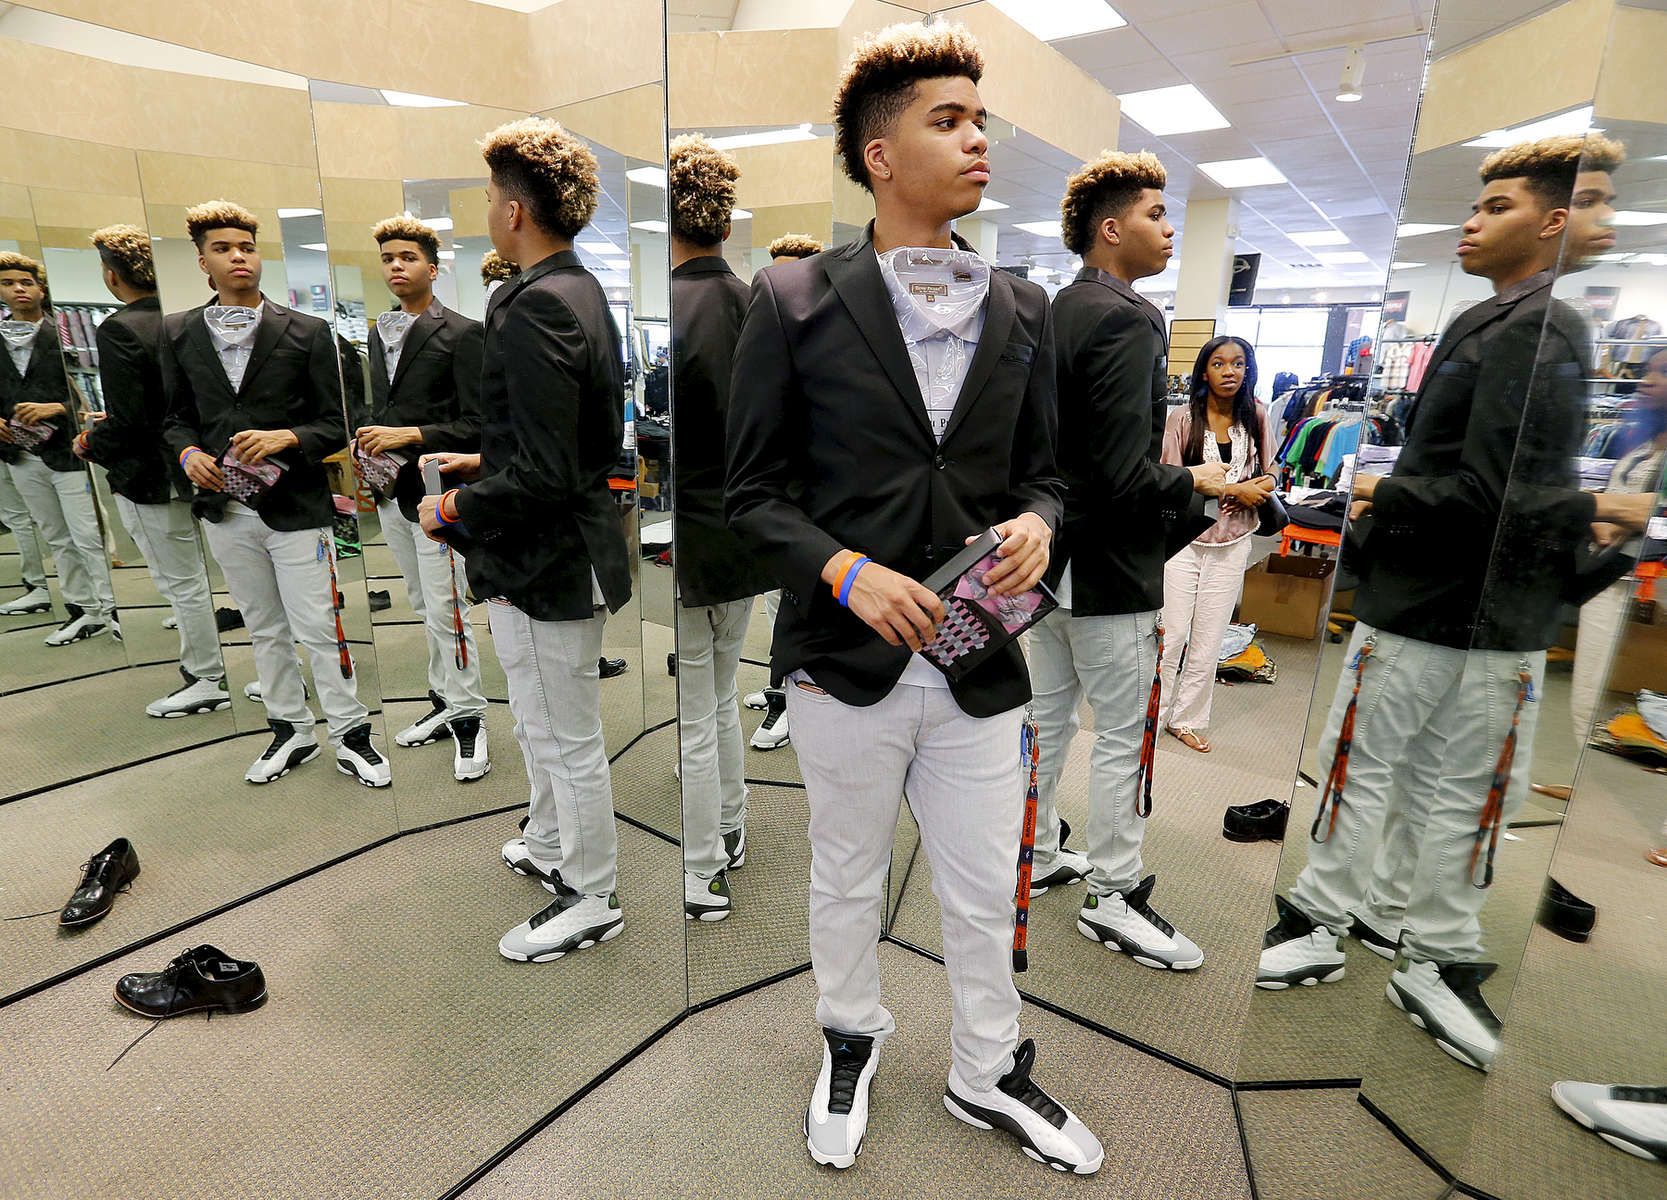 May 3, 2016 - Zearius Jenkins, with help from Paige Madison (reflected in mirror), shops for the perfect shirt to go with the bow tie and handkerchief he purchased to match the dress his date, a former St. George's student, will be wearing for the Southwind High School prom. The core group of original Memphis campus St. George's students have stayed close even though only five of the 19 will be graduating from the school. (Mike Brown/The Commercial Appeal)